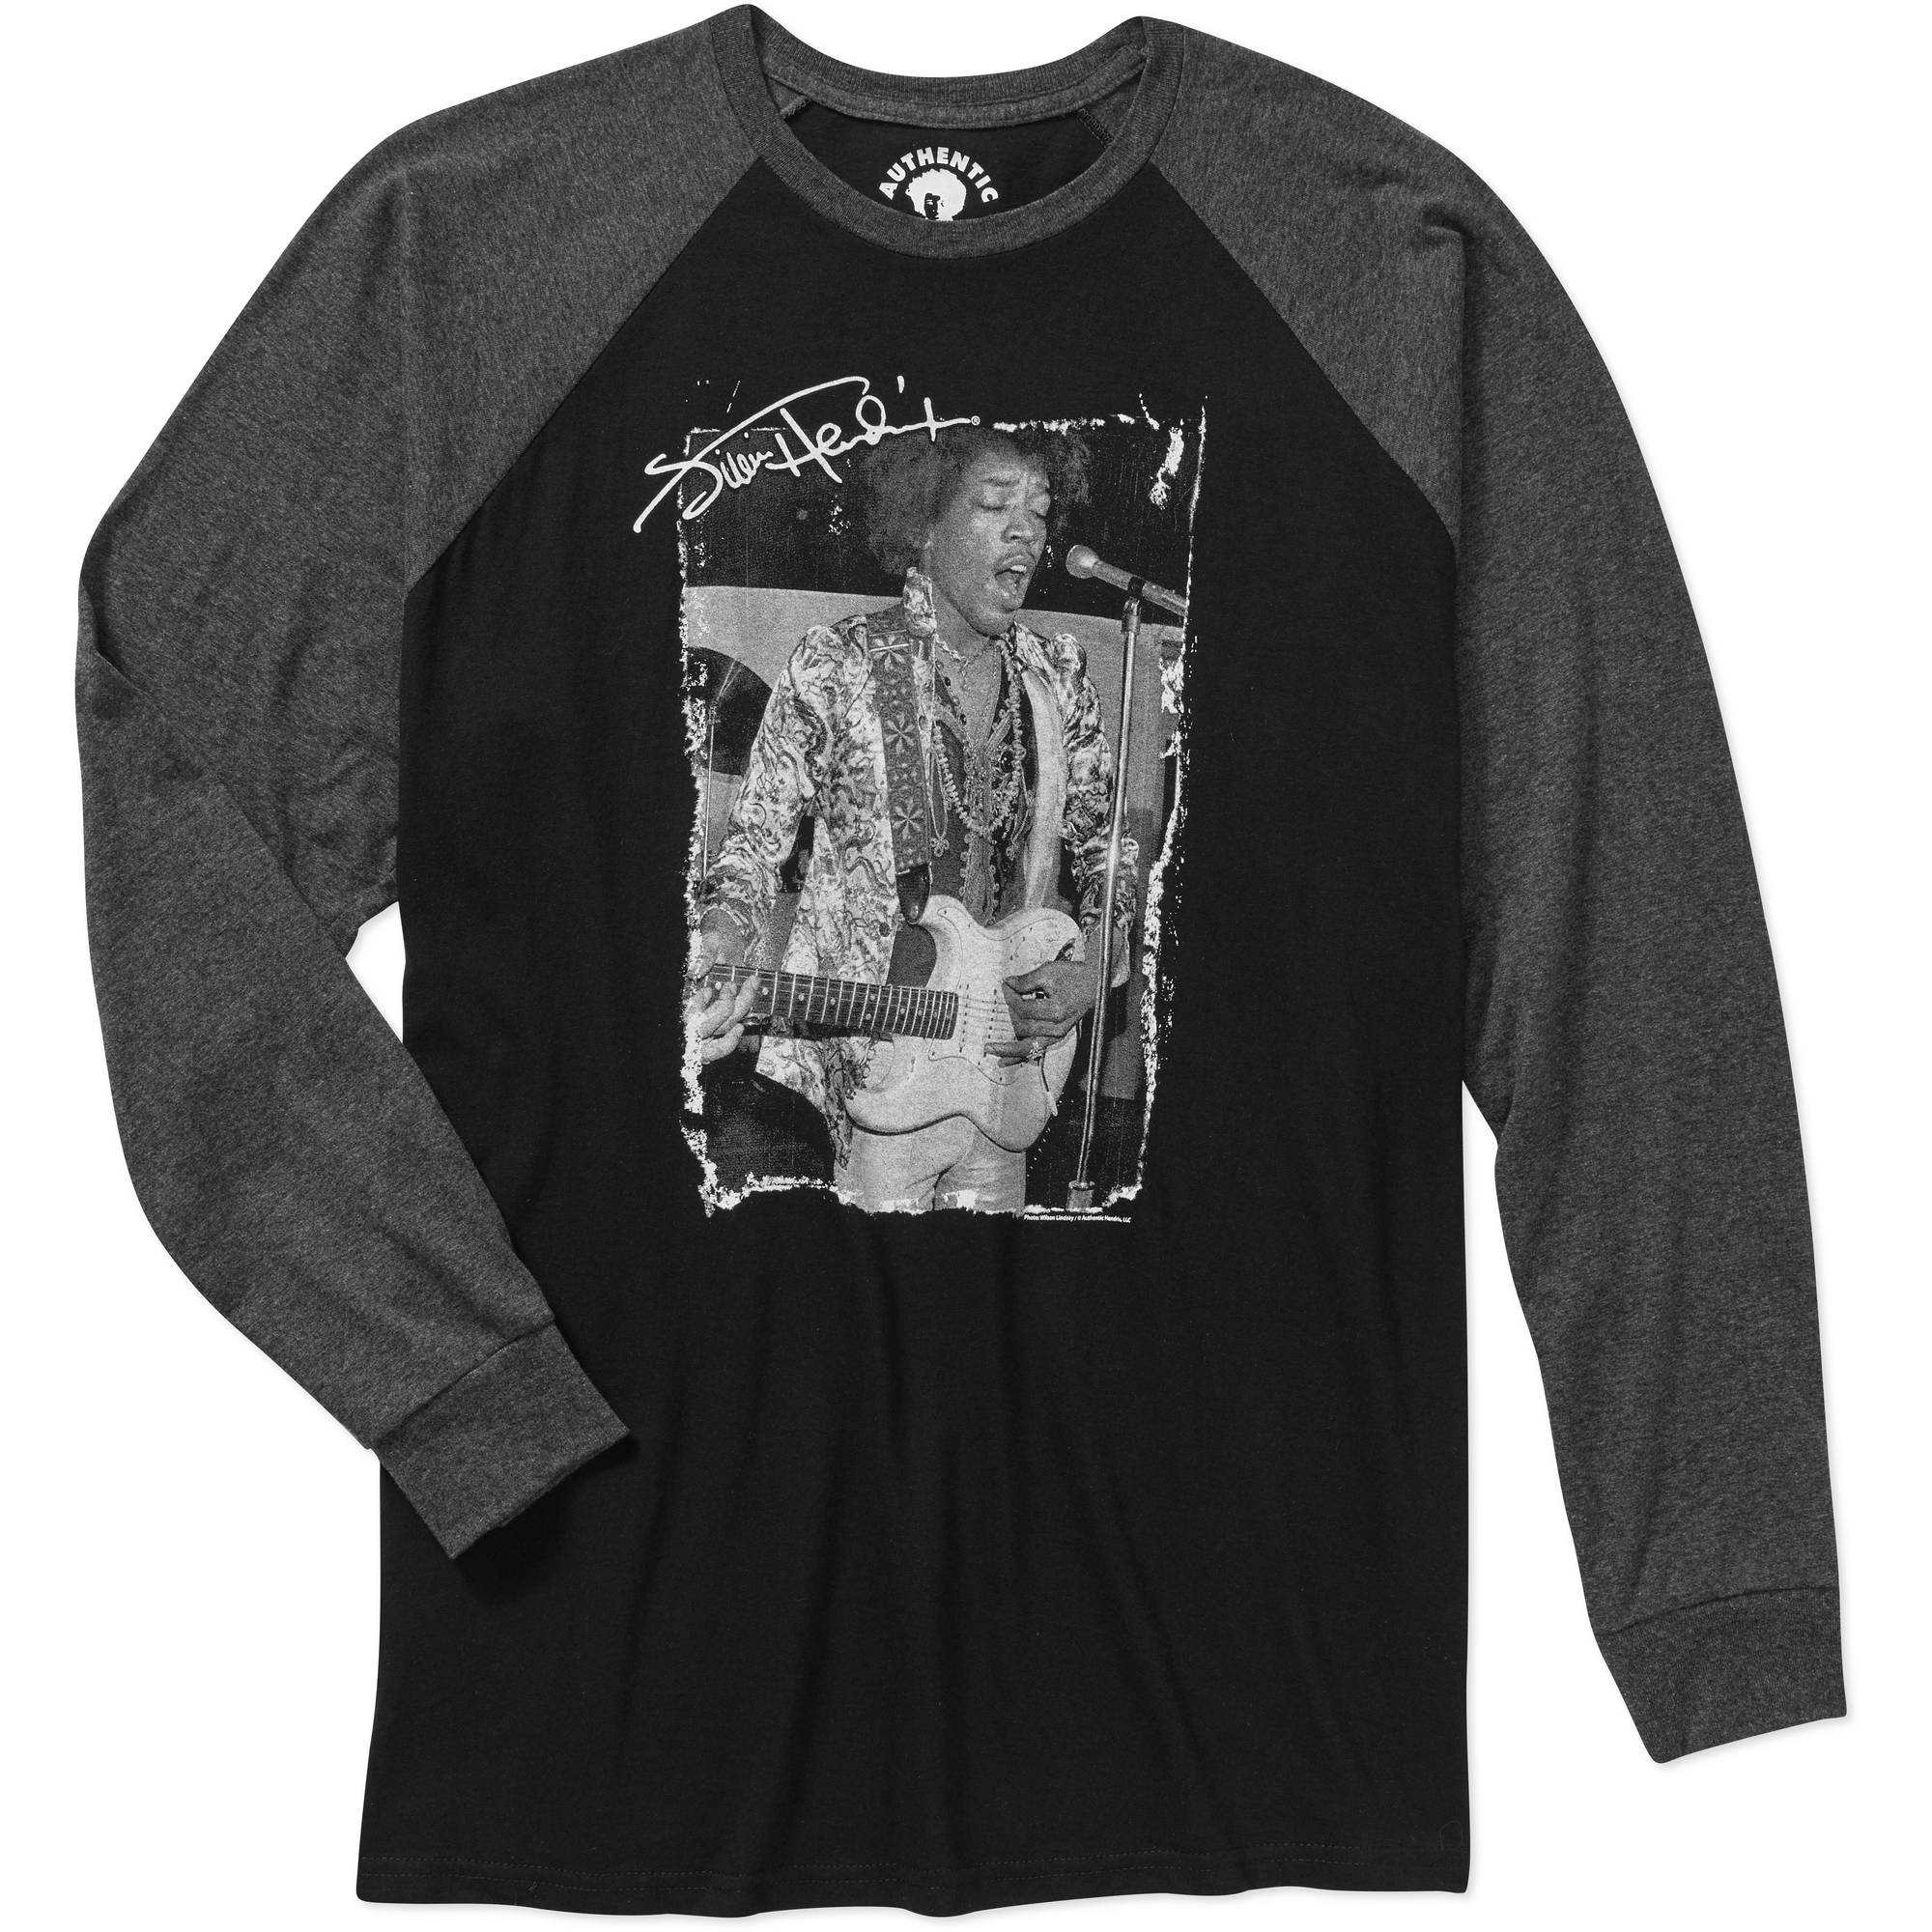 Jimi Hendrix Men's Graphic Raglan Baseball Tee